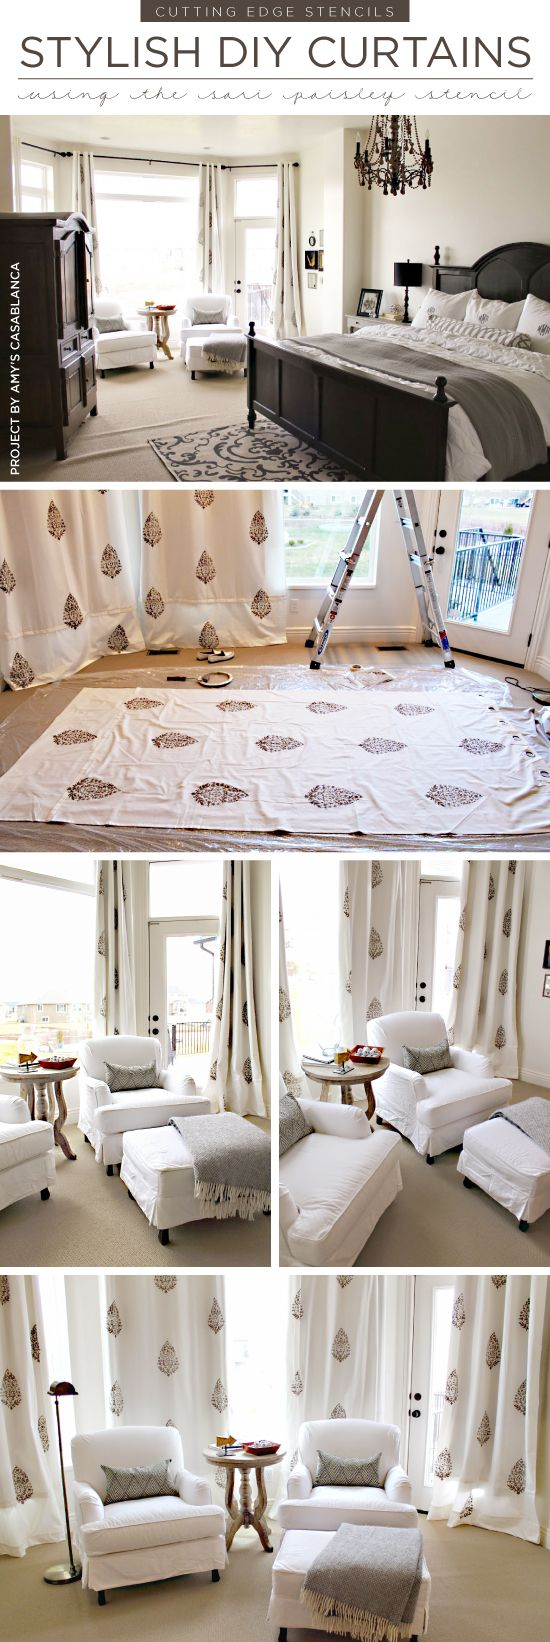 Best 25 paisley stencil ideas on pinterest paisley pattern cutting edge stencils shares diy stenciled curtains in a master bedroom using the sari paisley stencil amipublicfo Image collections